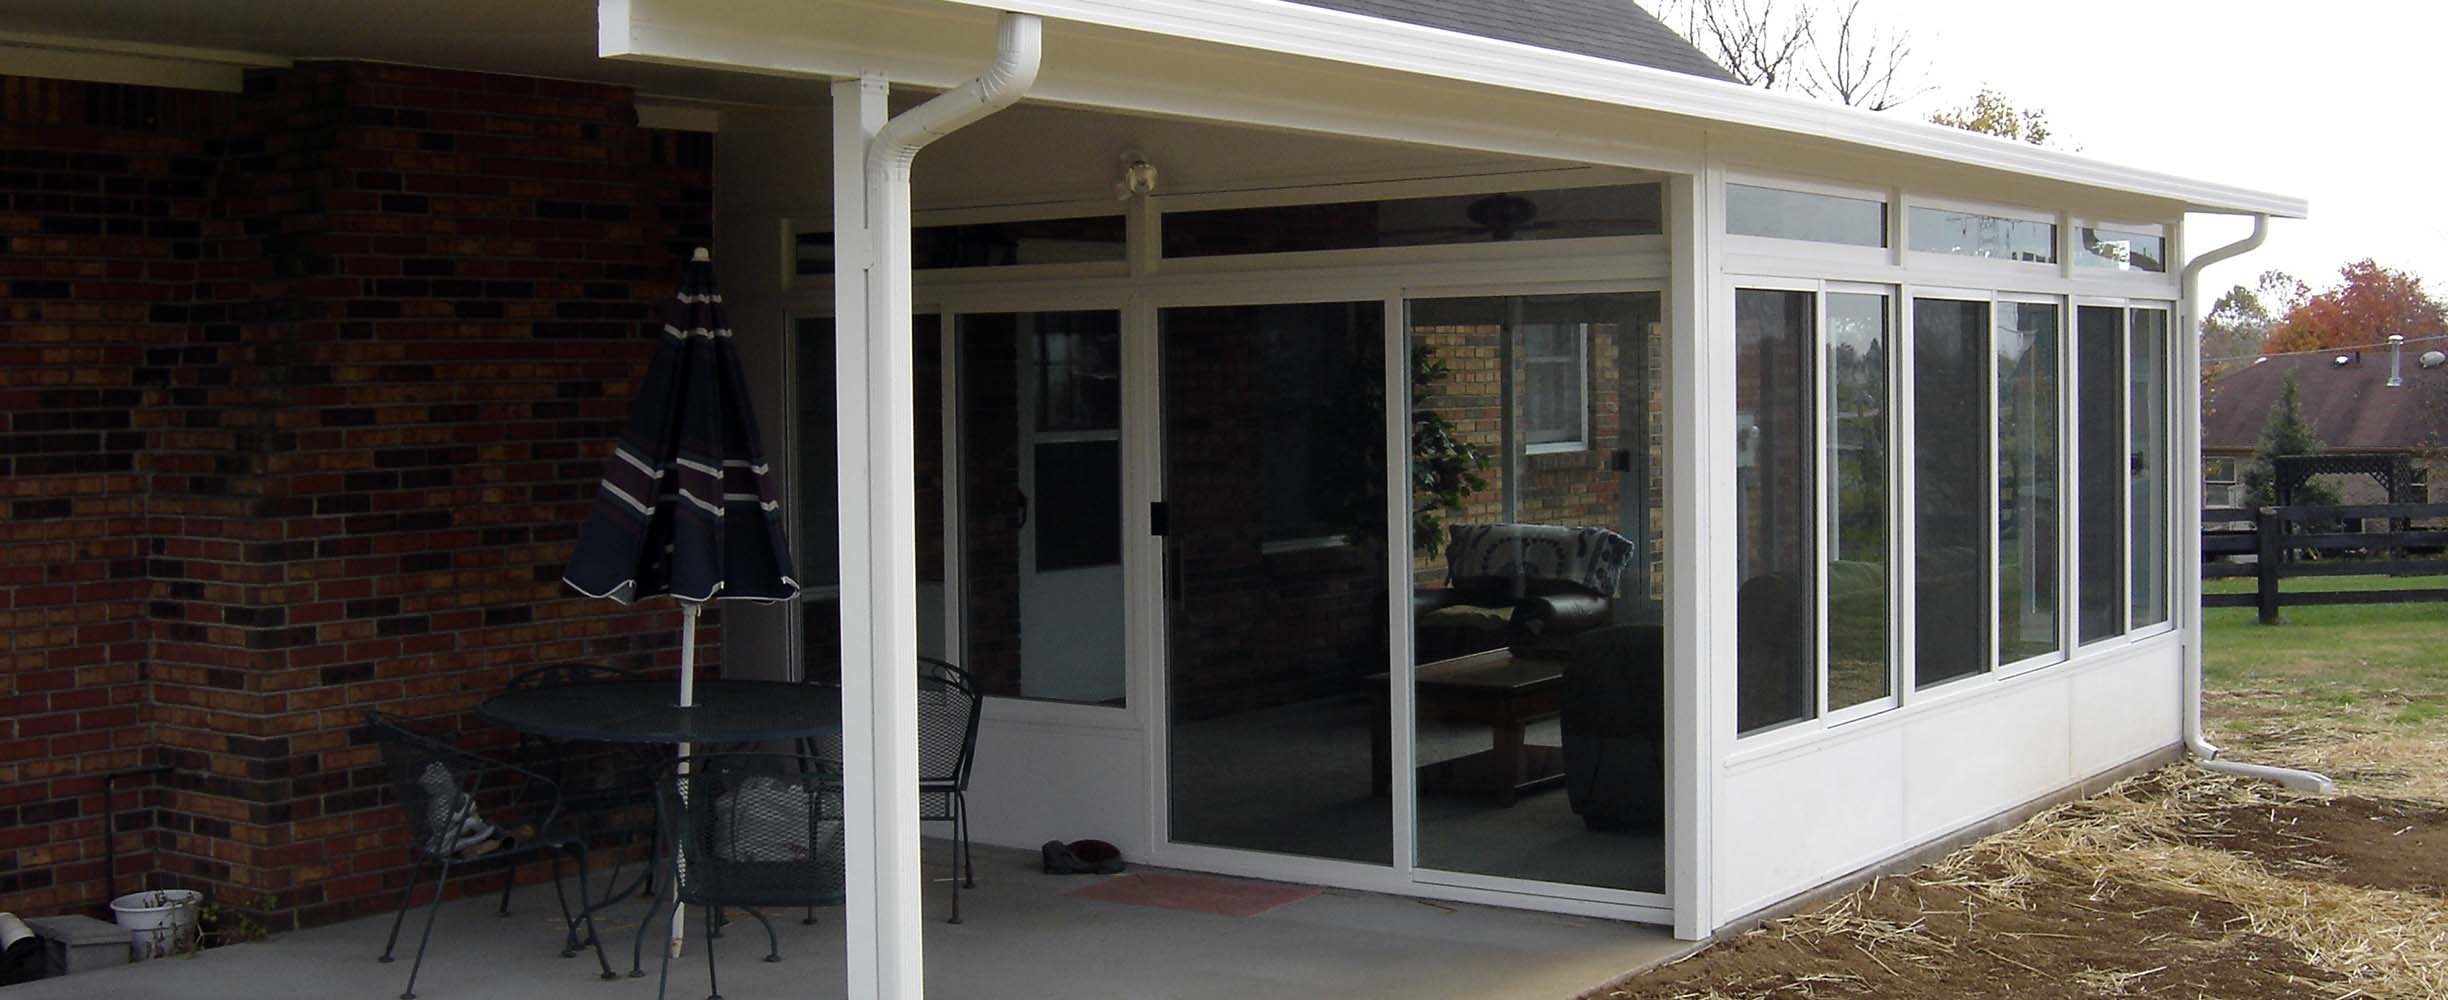 Patio Covers Can Be Mixed With Patio Sunrooms To Make Really Practical  House Extensions Within A